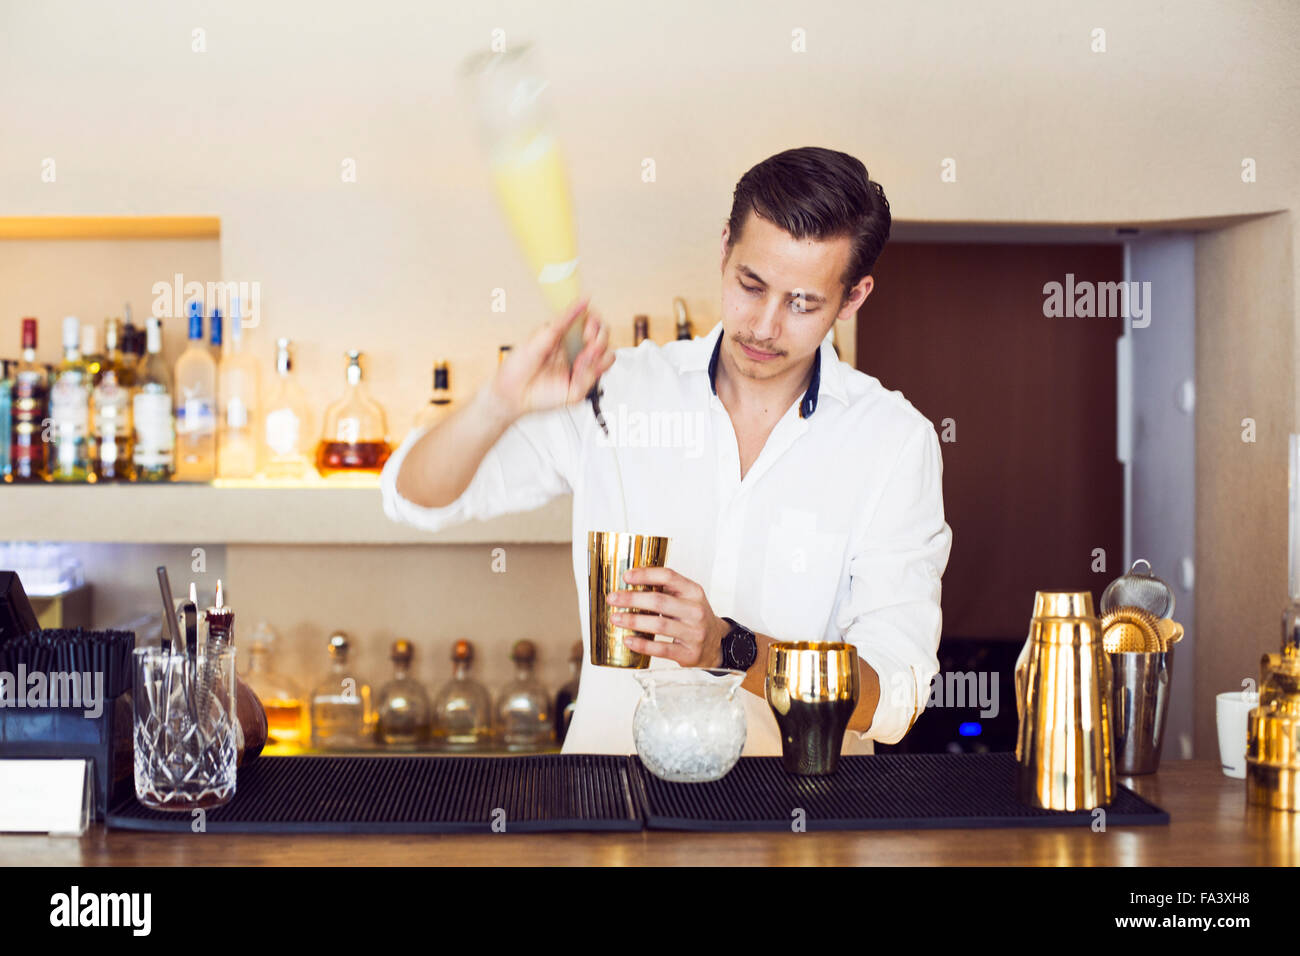 Male bartender making drink at counter in Lebanese restaurant - Stock Image